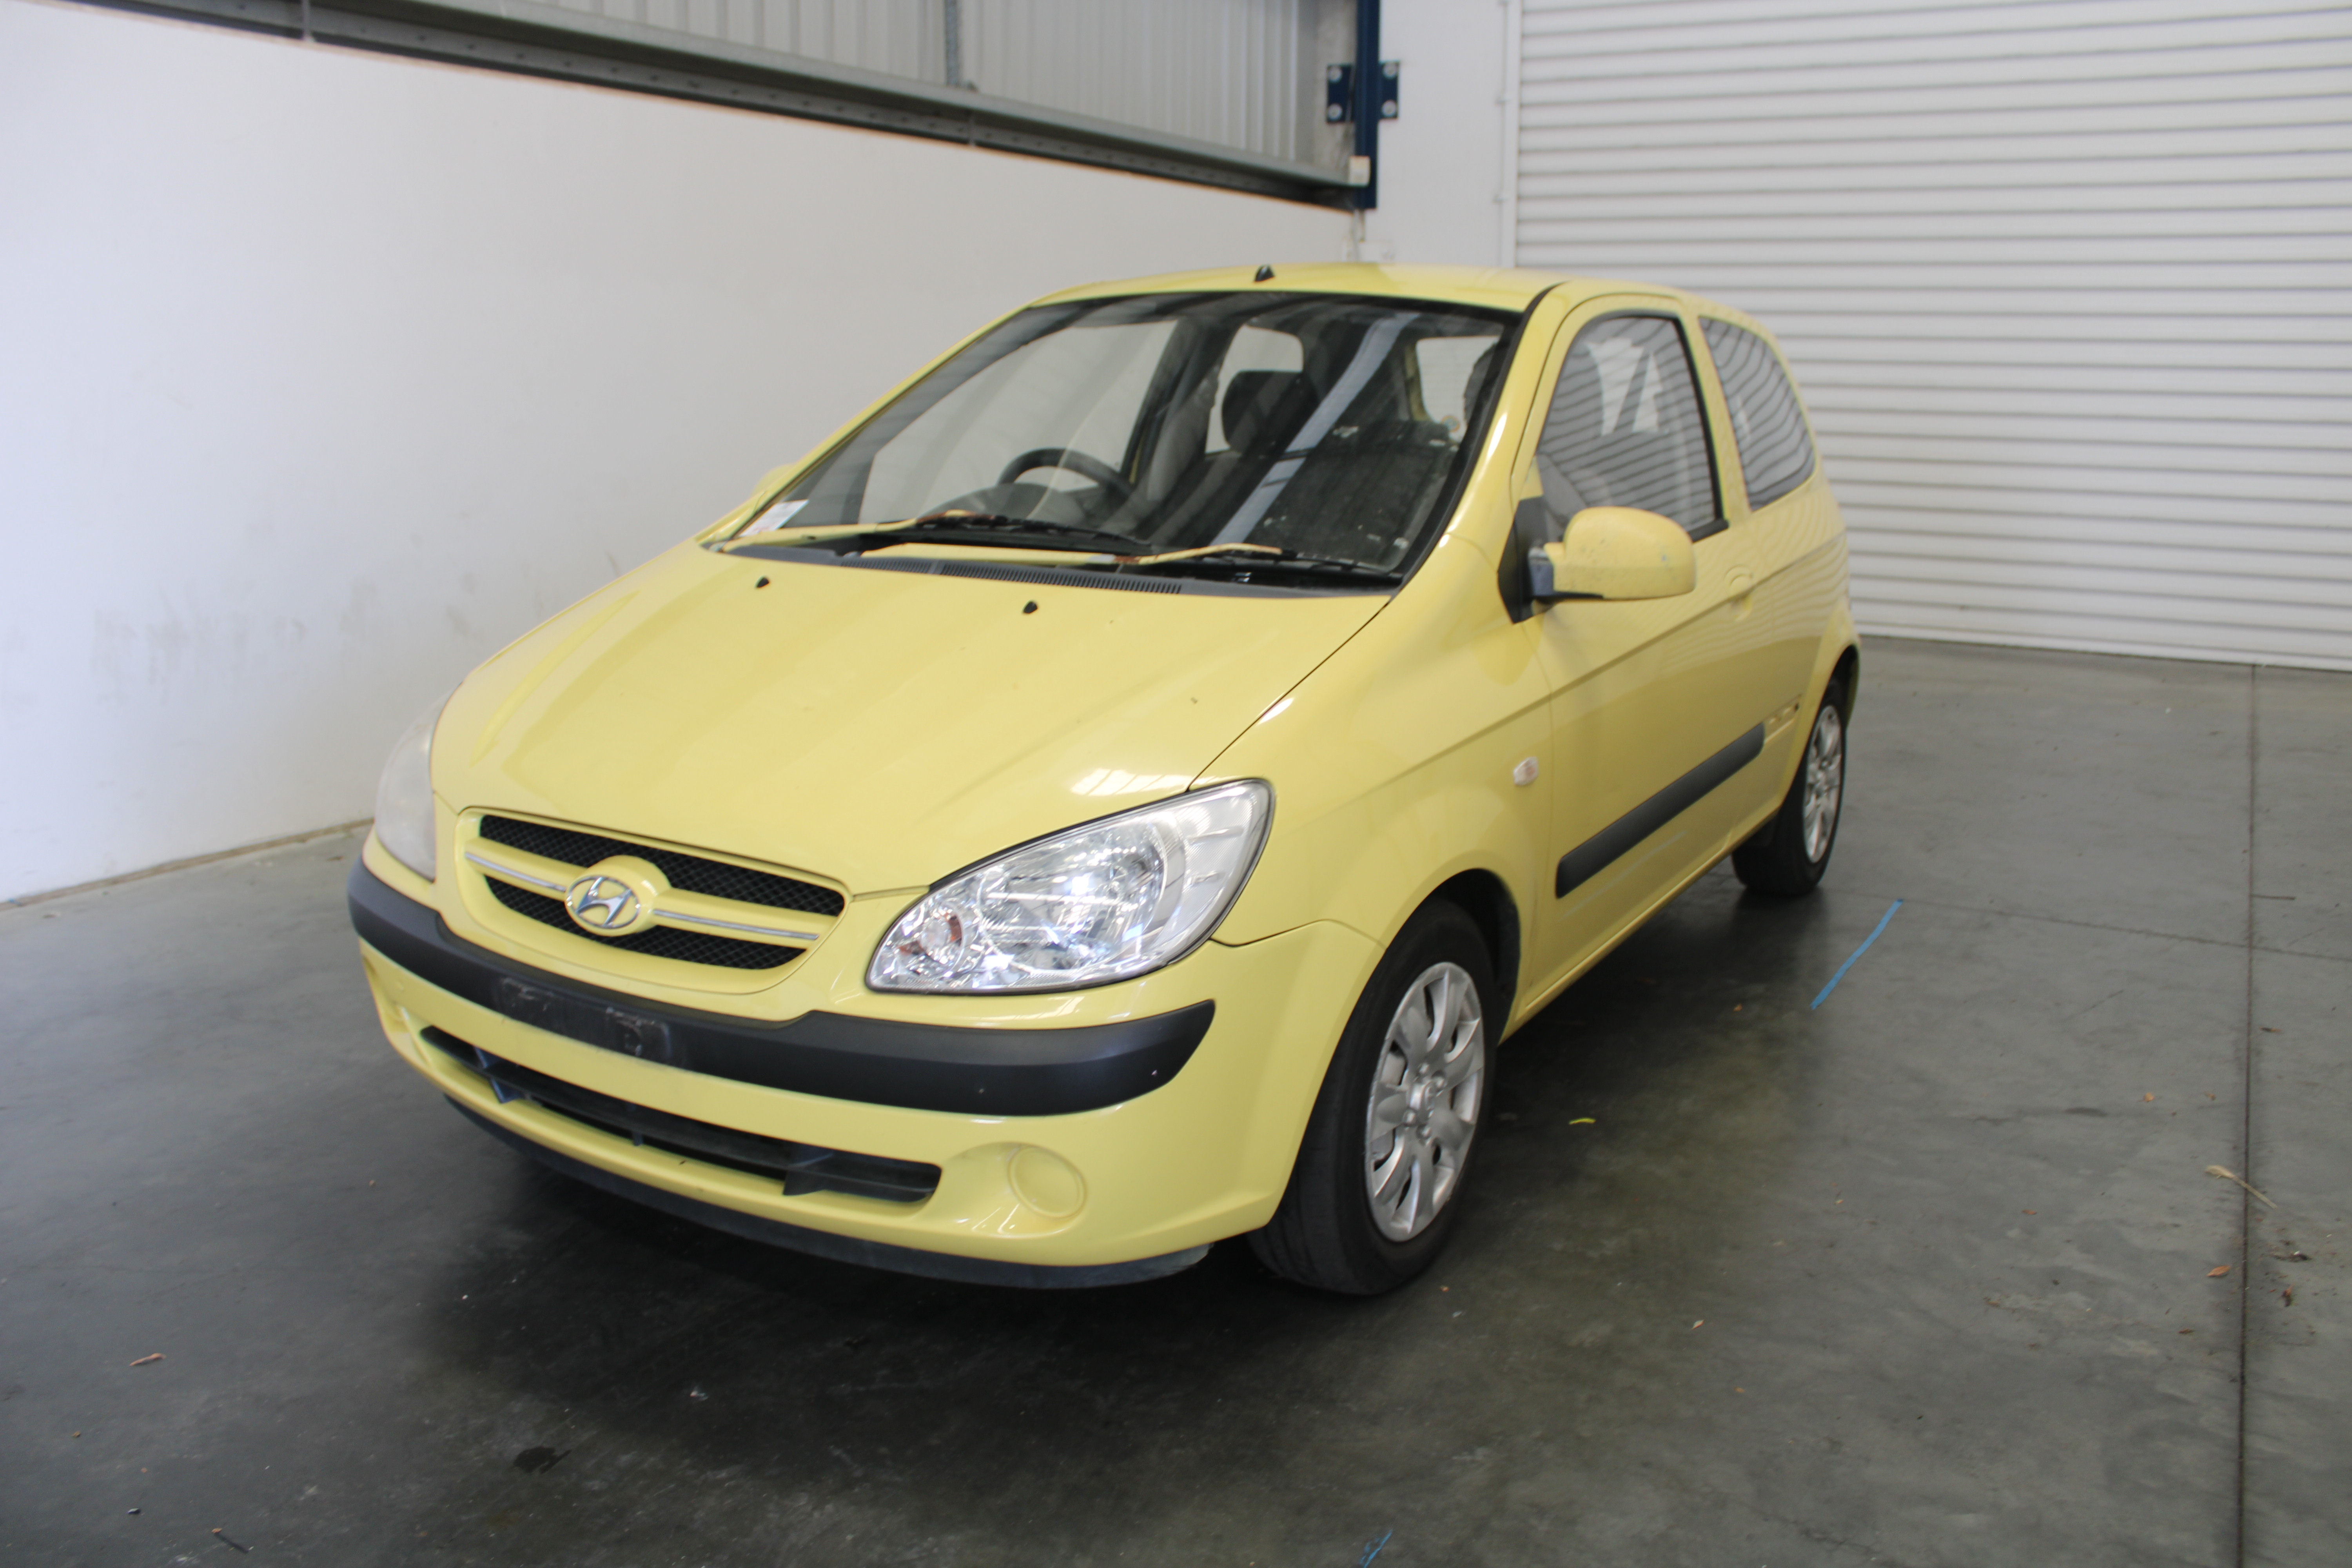 2006 Hyundai Getz 1.6 TB Manual Hatchback